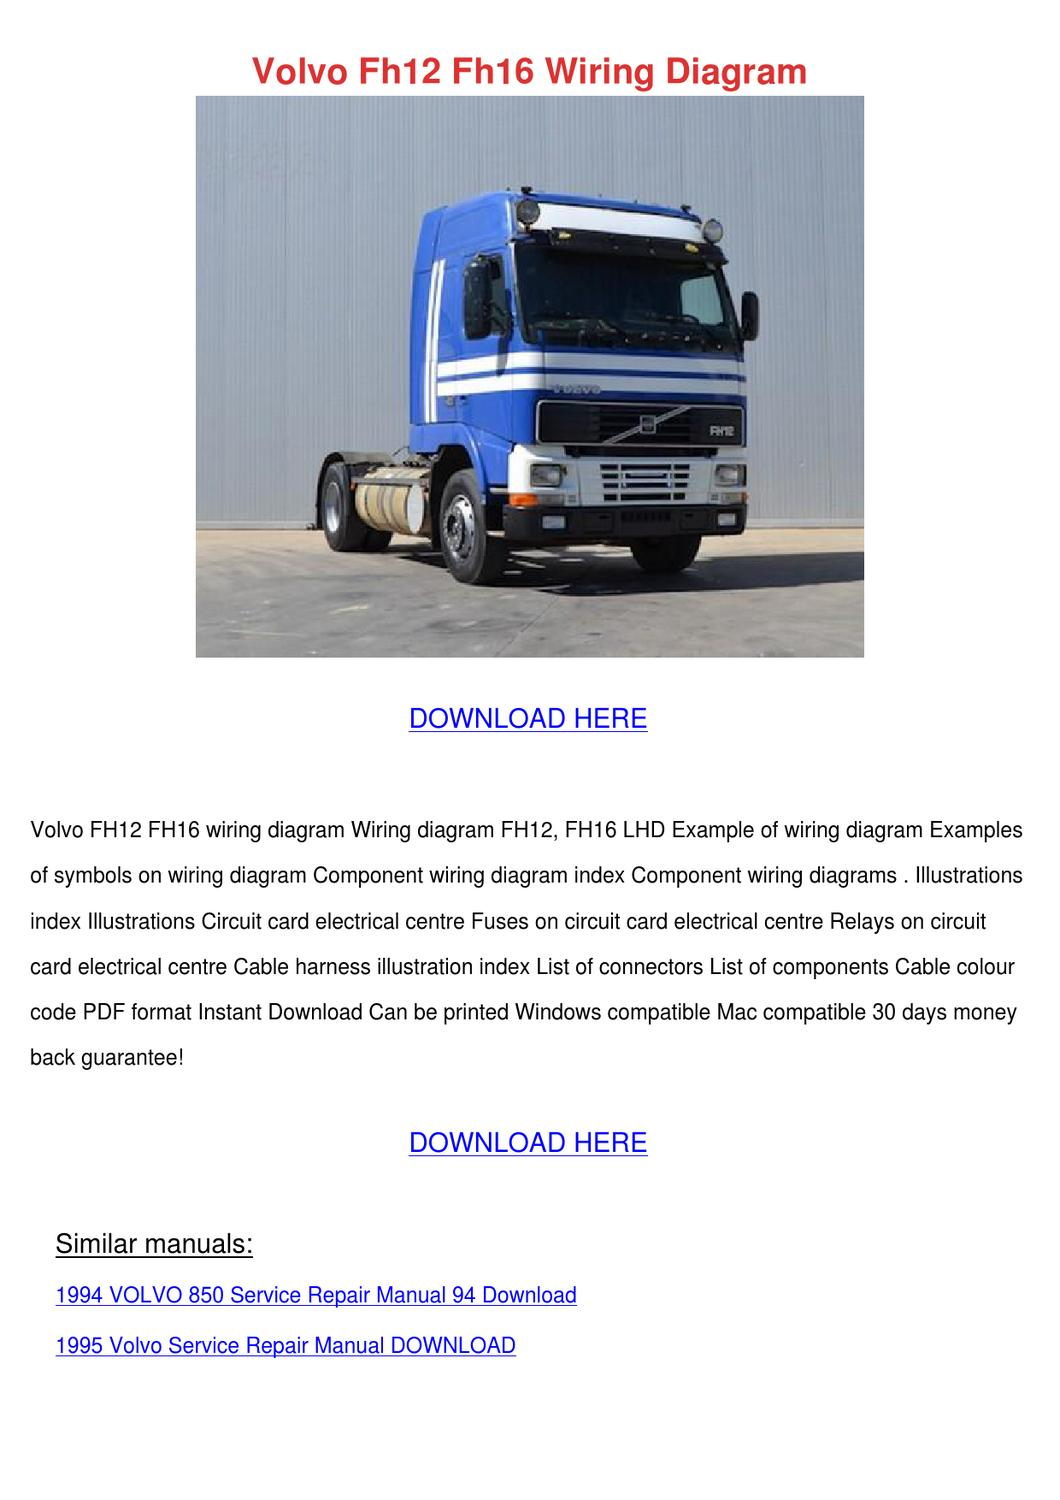 Volvo Fh12 Fh16 Wiring Diagram by RomaRainey - issuu | Volvo Fh12 Wiring Diagram Pdf |  | Issuu